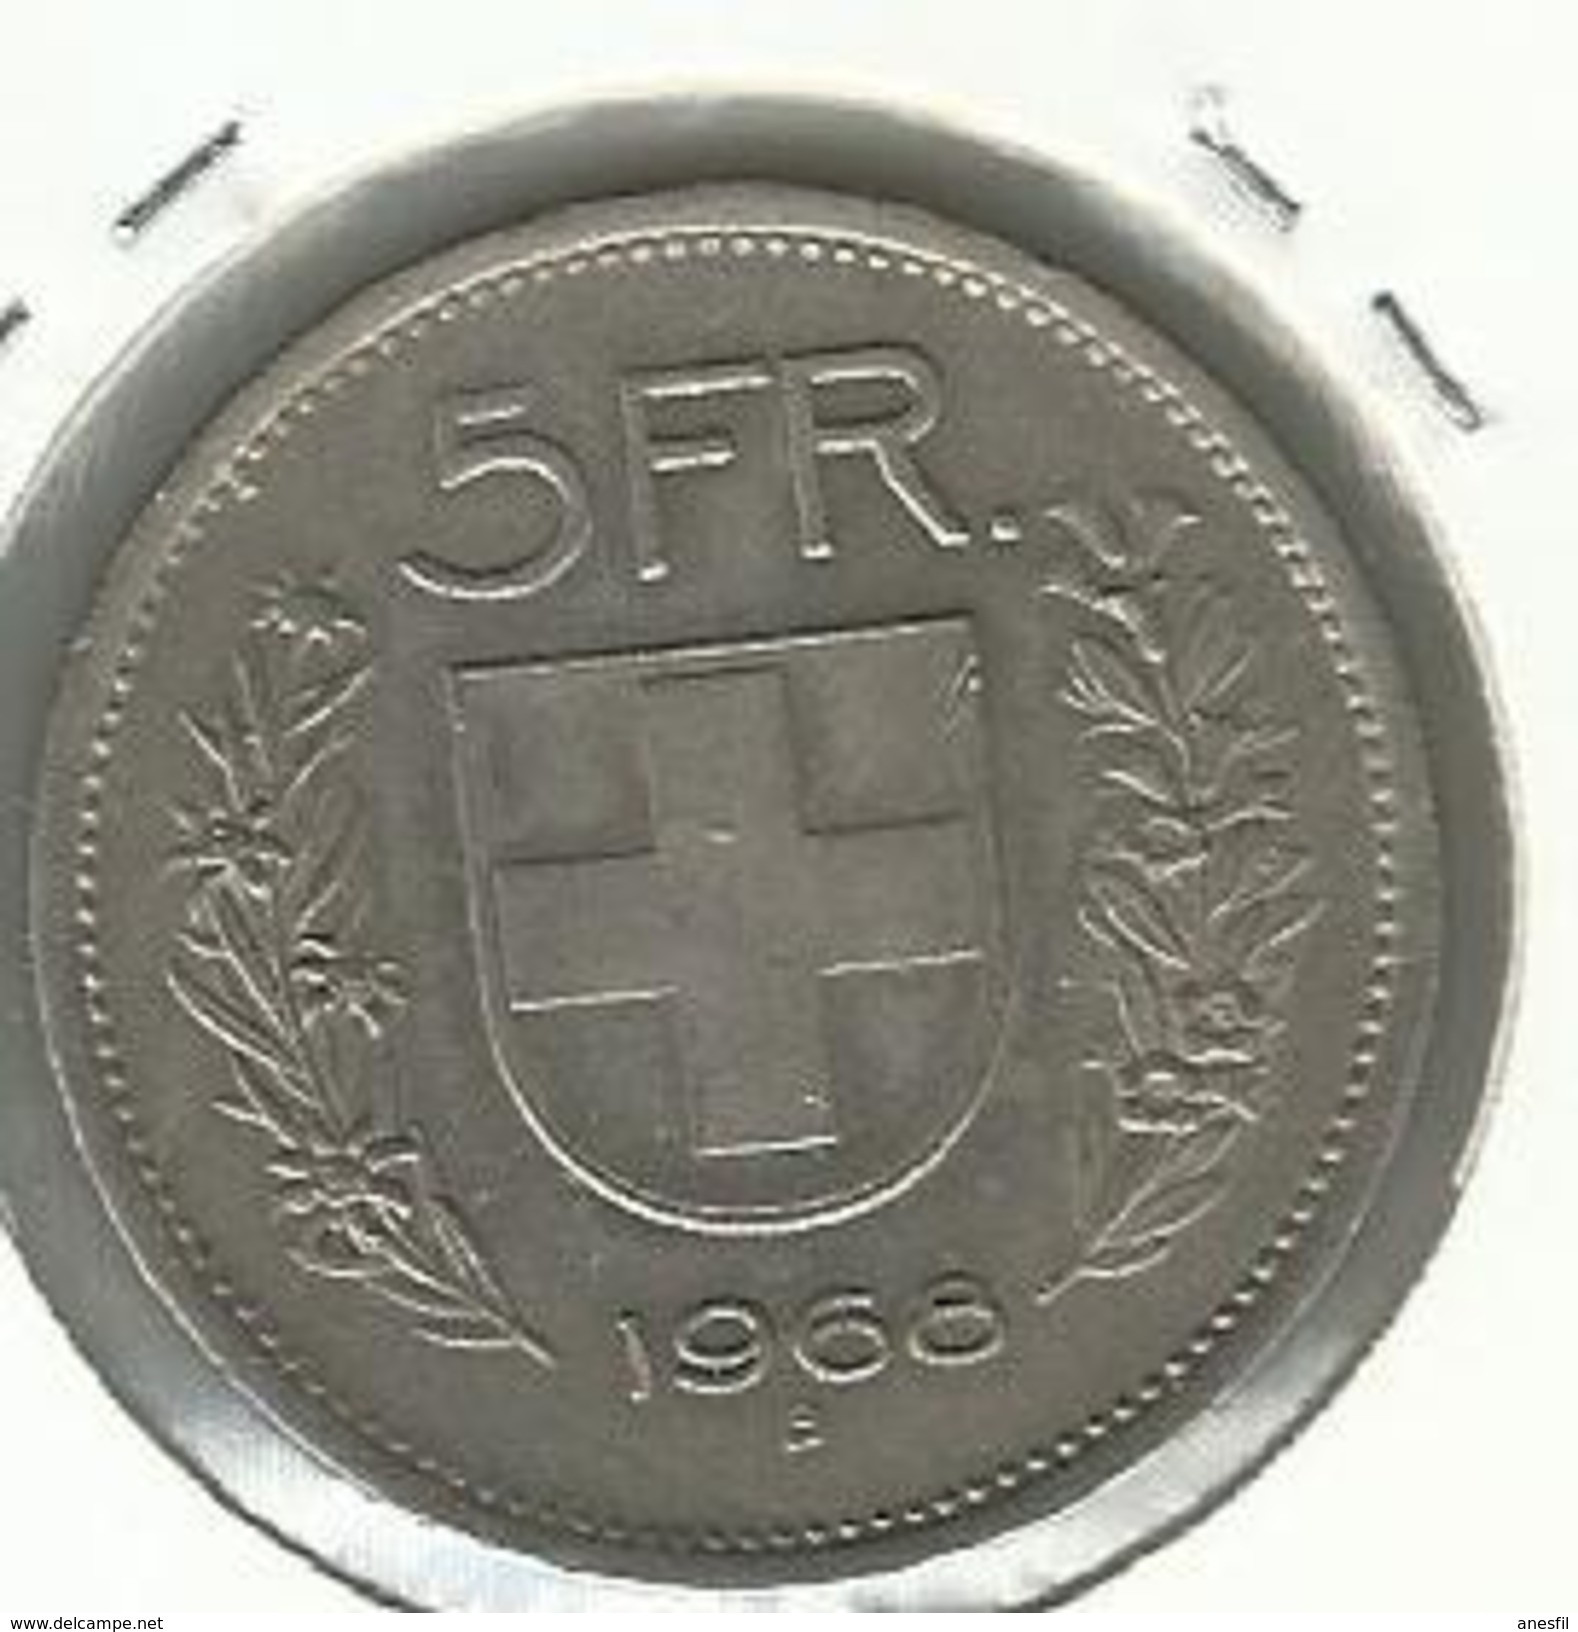 Suiza_1968_5 Francos. KM 40a 1 - Suiza